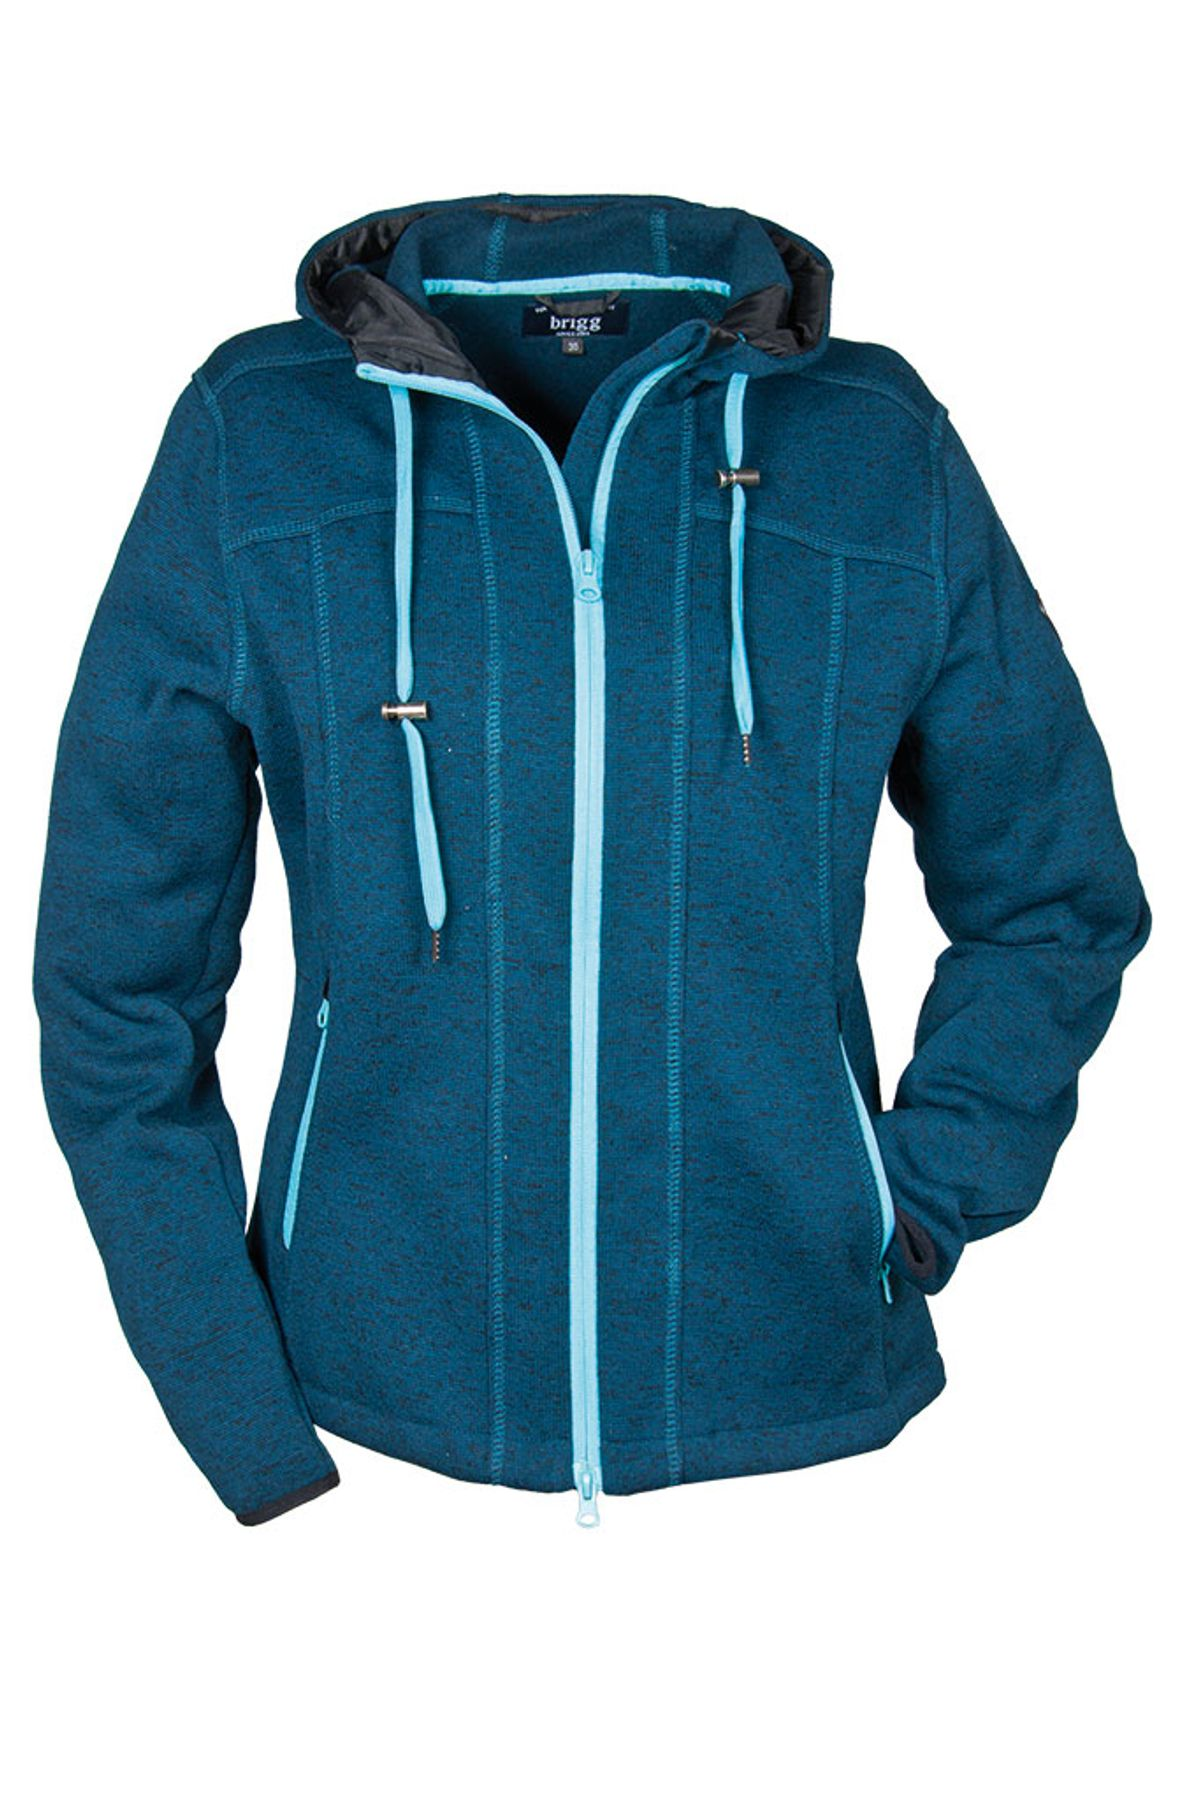 Brigg - Damen Fleecejacke in Strickoptik , H/W (10723534) – Bild 1